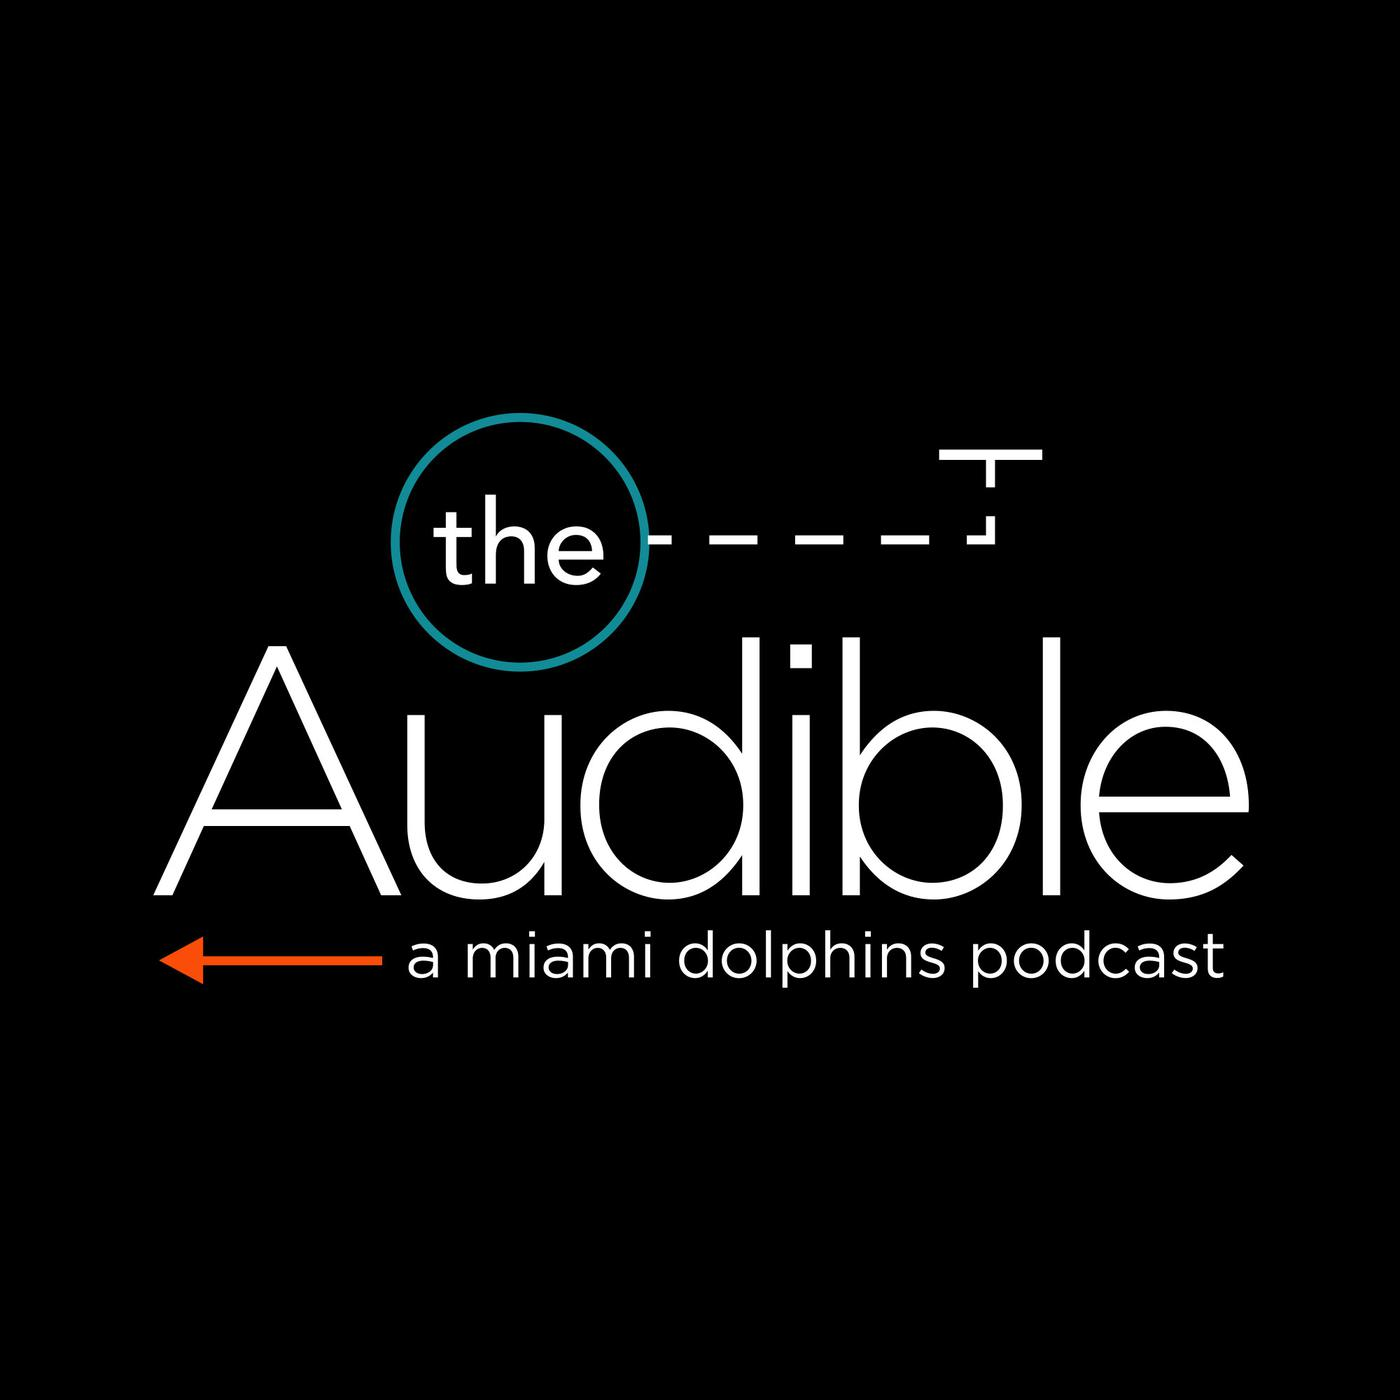 The Audible - Miami Dolphins (podcast) - Miami Dolphins